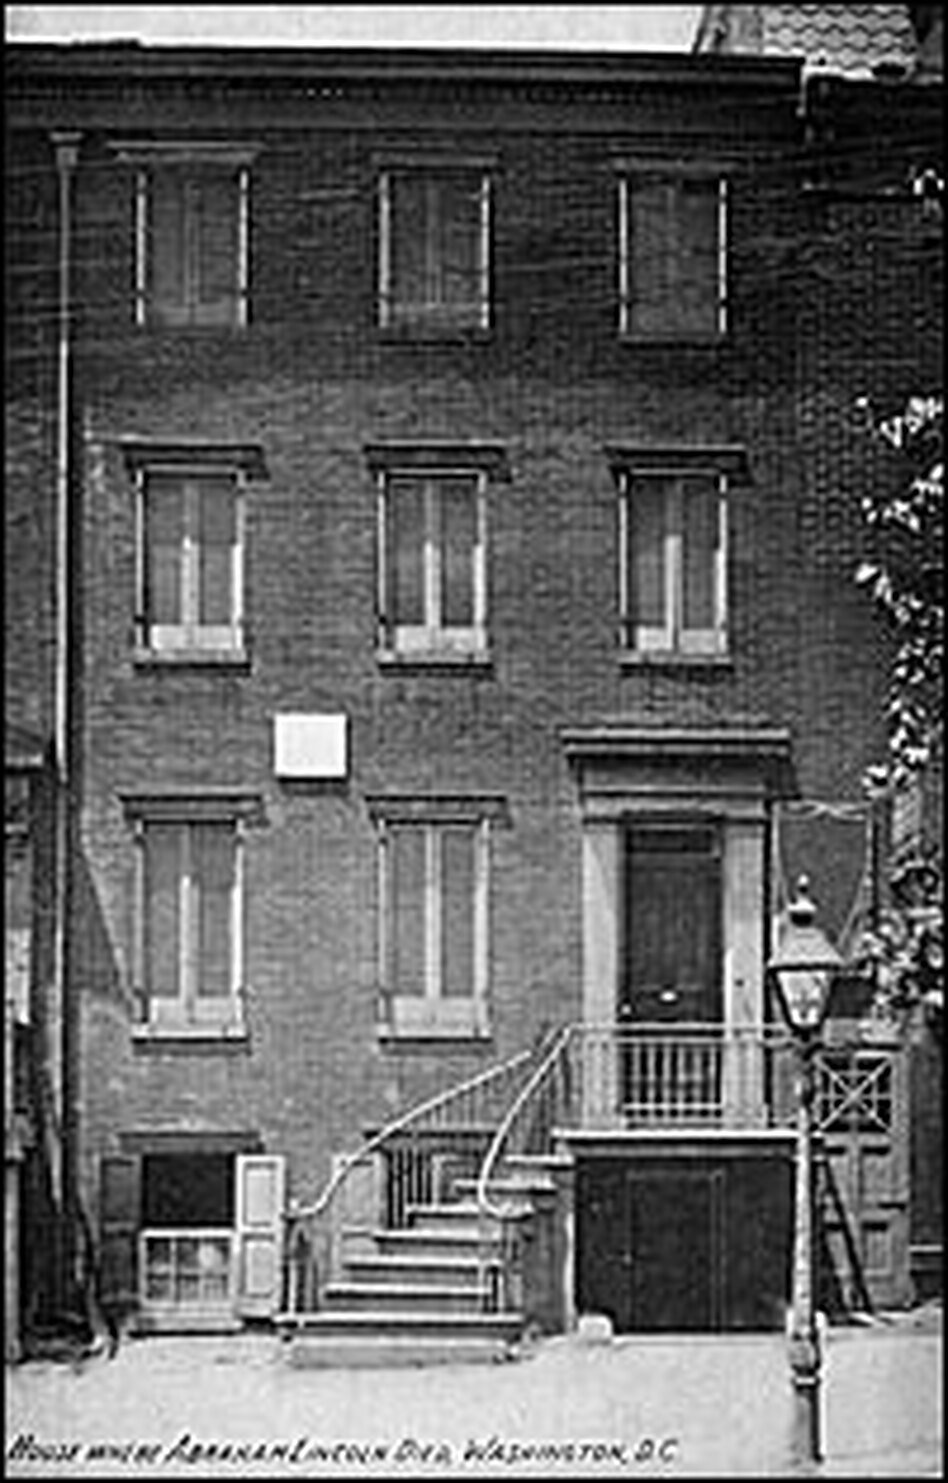 Petersen's Boarding House, circa 1900.  Lincoln was brought here, across the street from Ford's Theatre, after he was shot. He died of his injuries on the morning of April 15, 1865.